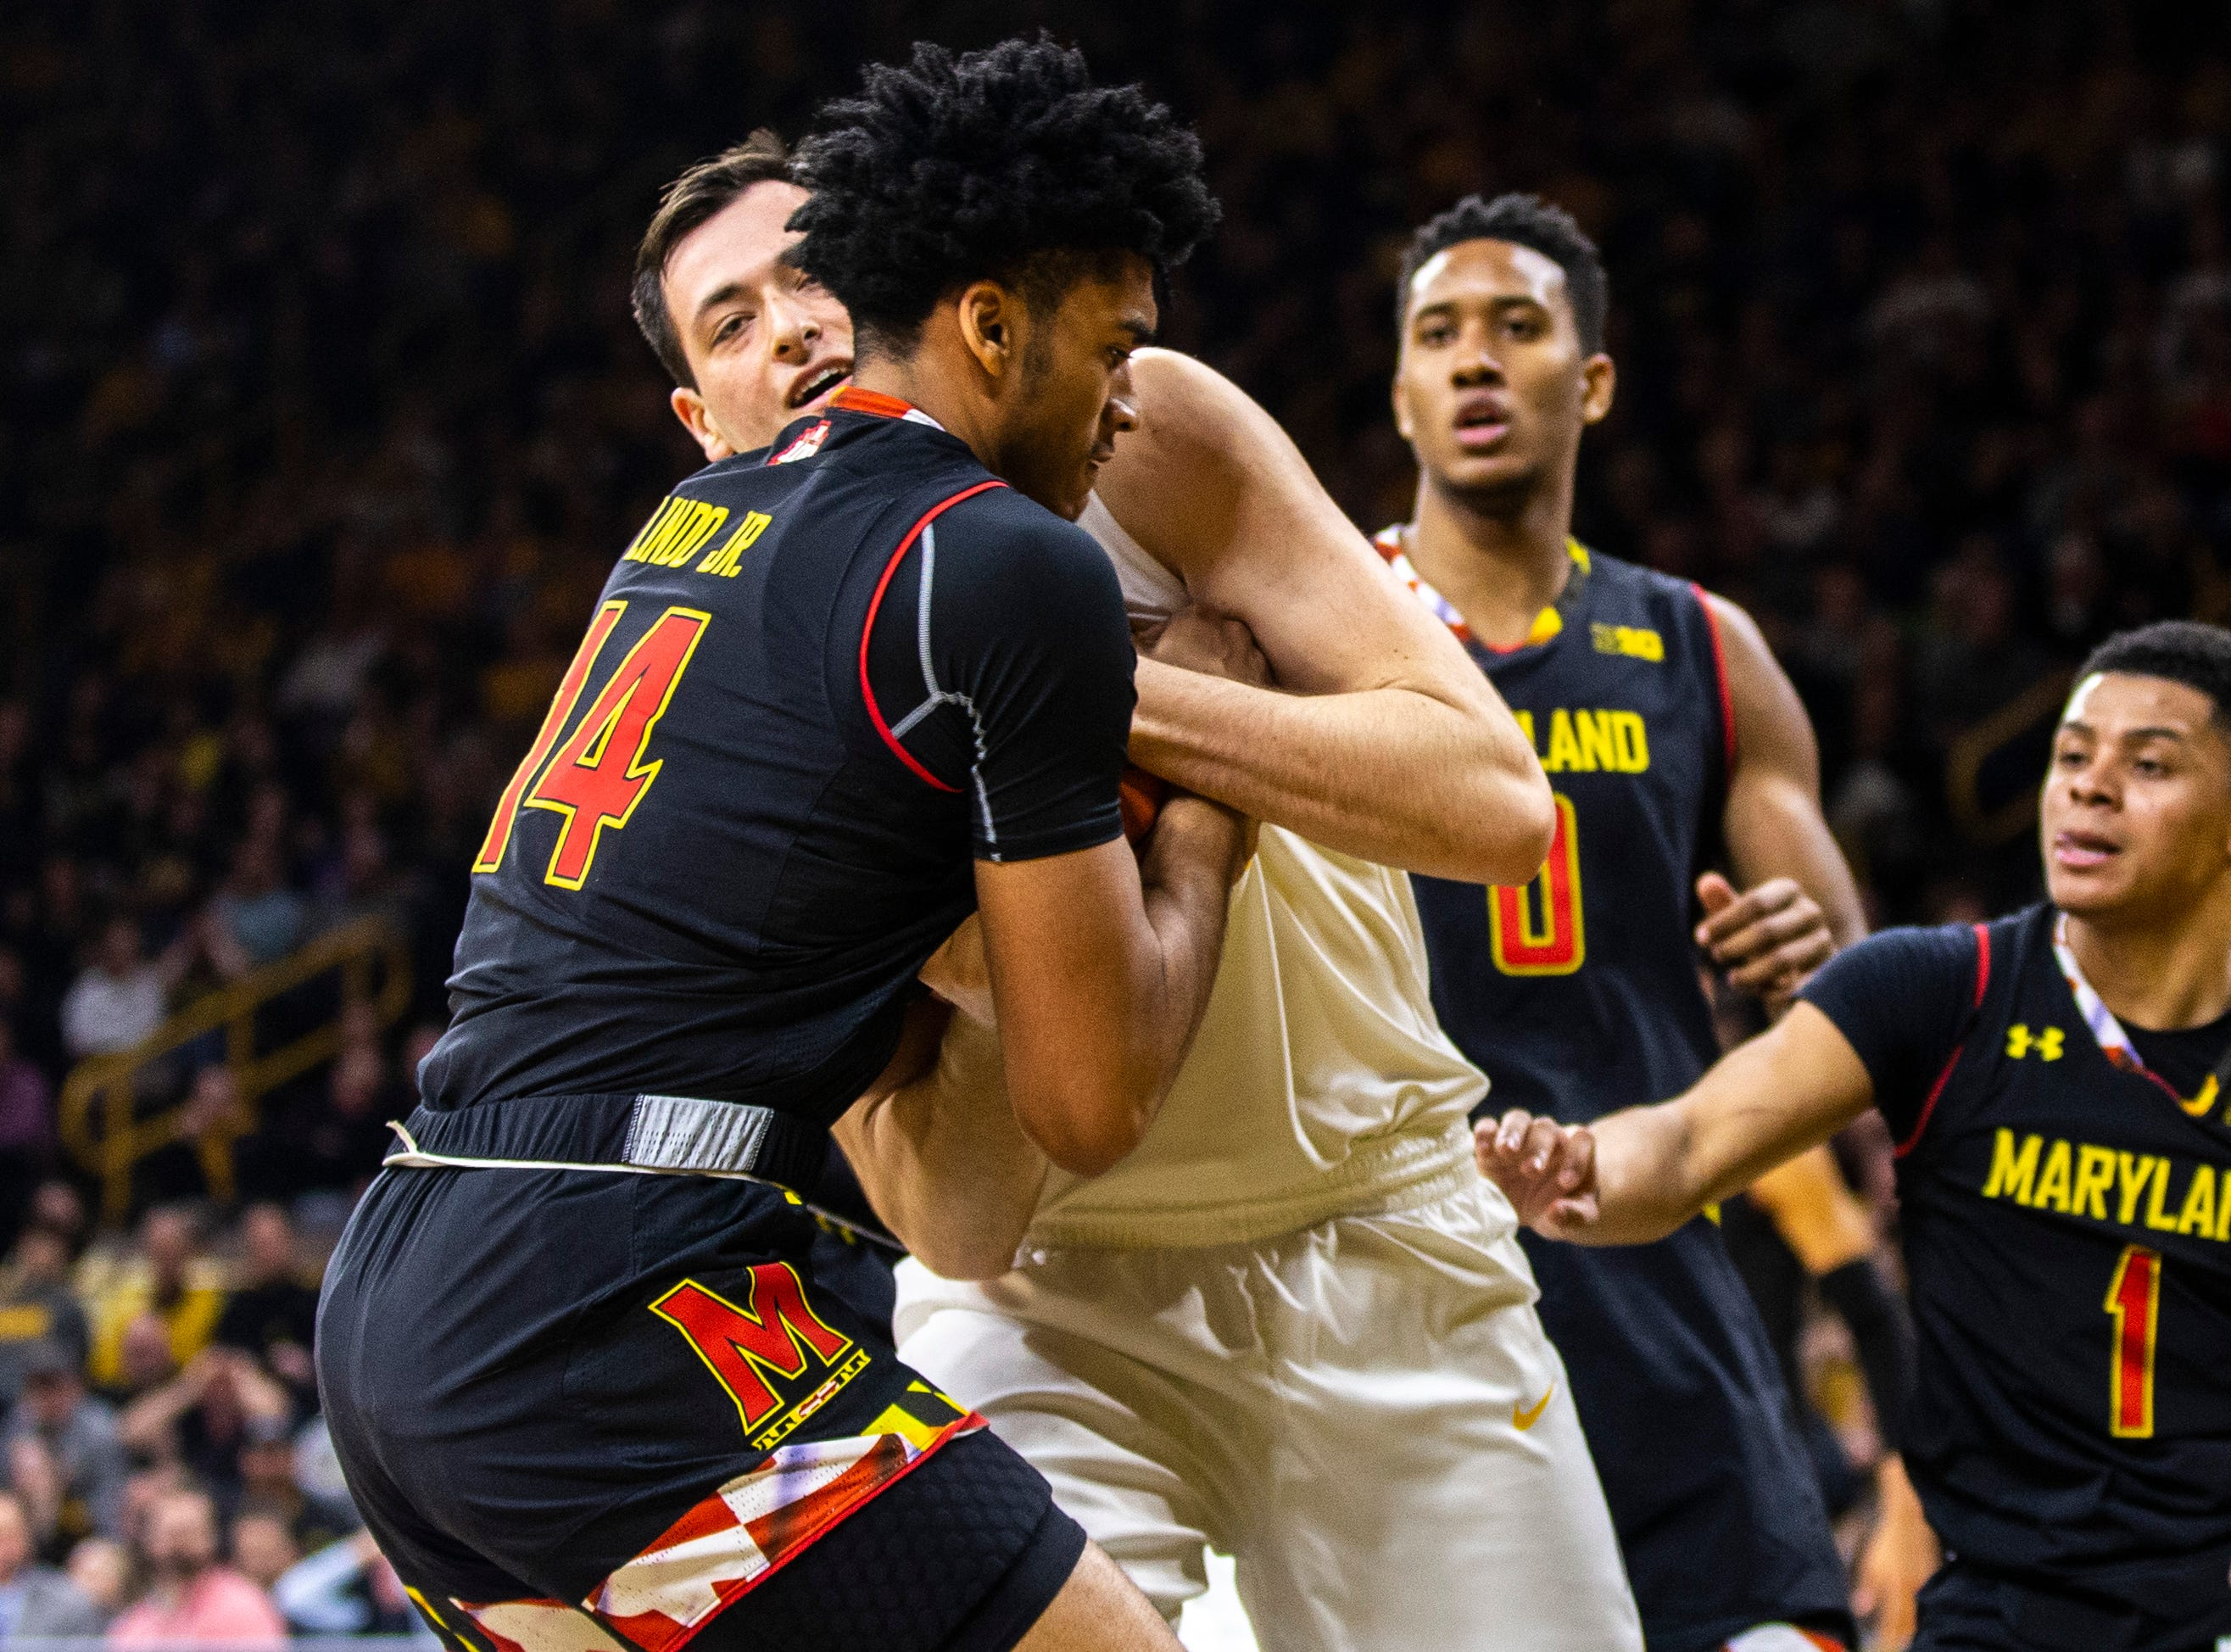 Iowa forward Ryan Kriener (15) battles Maryland forward Ricky Lindo Jr. (14) for a jump ball during a NCAA Big Ten Conference men's basketball game on Tuesday, Feb. 19, 2019 at Carver-Hawkeye Arena in Iowa City, Iowa.